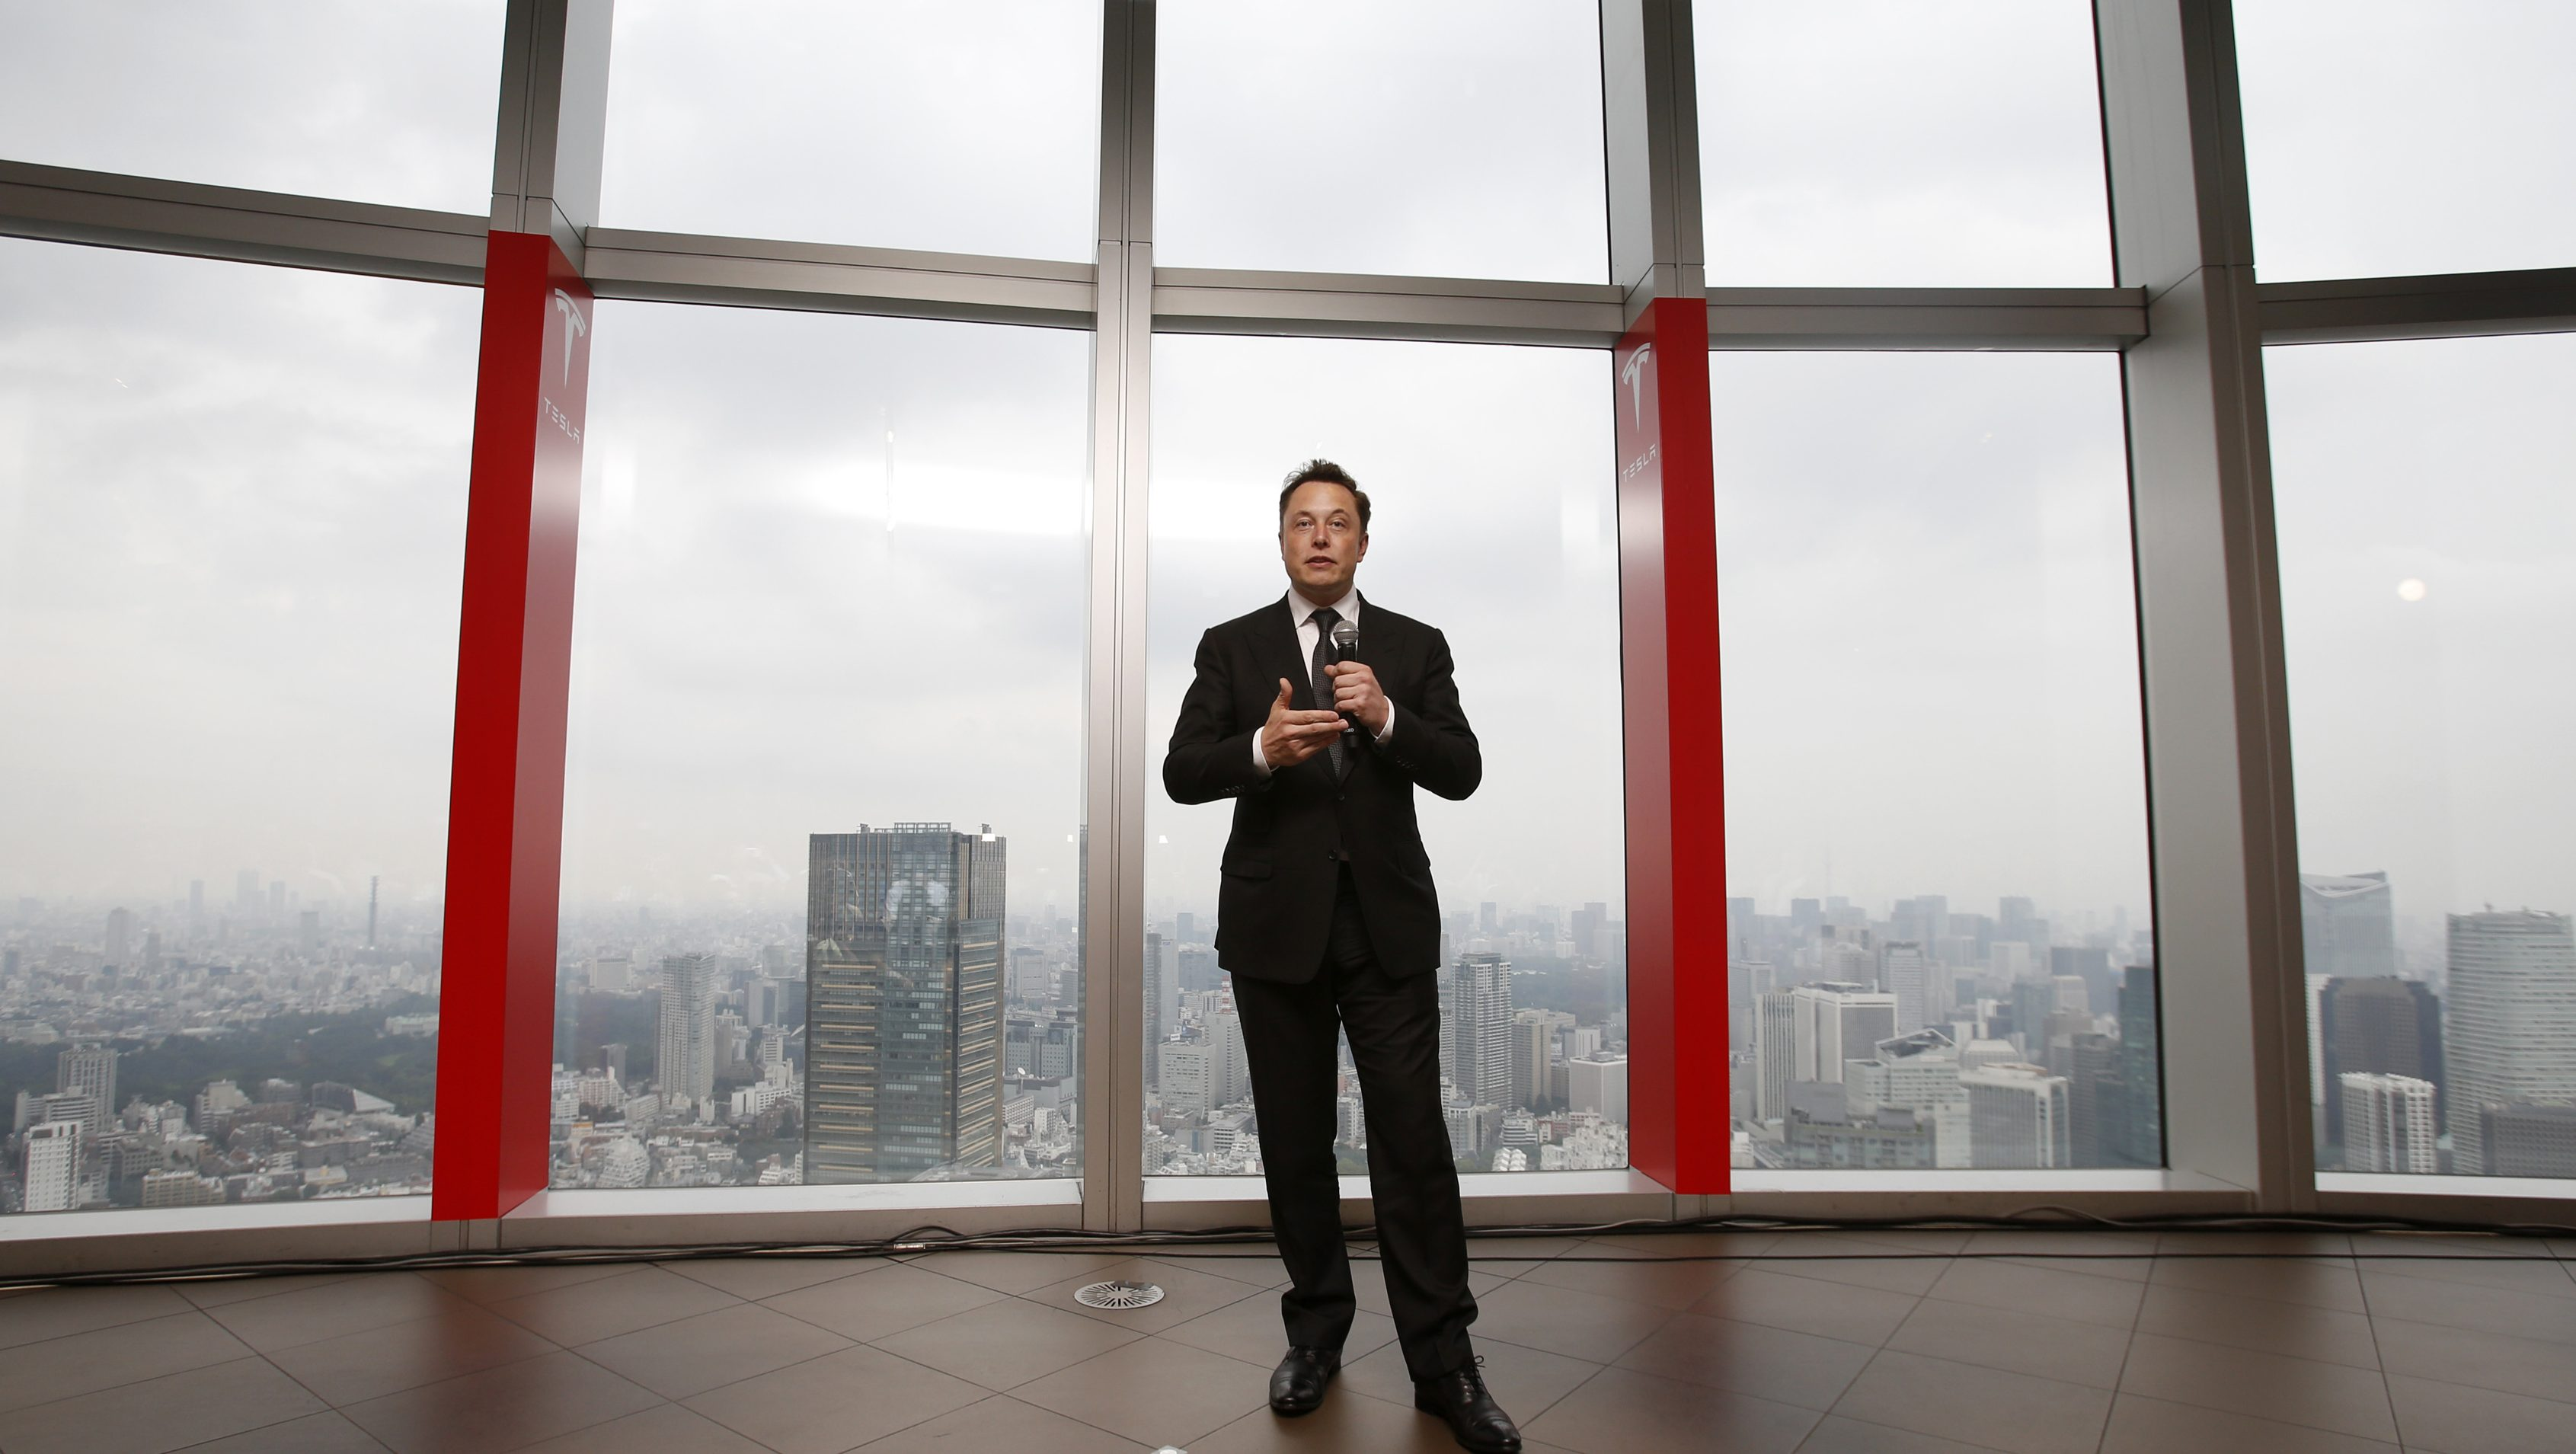 Tesla Motors Inc Chief Executive Elon Musk speaks during a news conference in Tokyo September 8, 2014. Musk said on Monday that he would not be surprised if there was a significant deal with Toyota Motor Corp in the next two to three years, though there were no definitive plans. REUTERS/Toru Hanai (JAPAN - Tags: BUSINESS TRANSPORT) - RTR45C8T